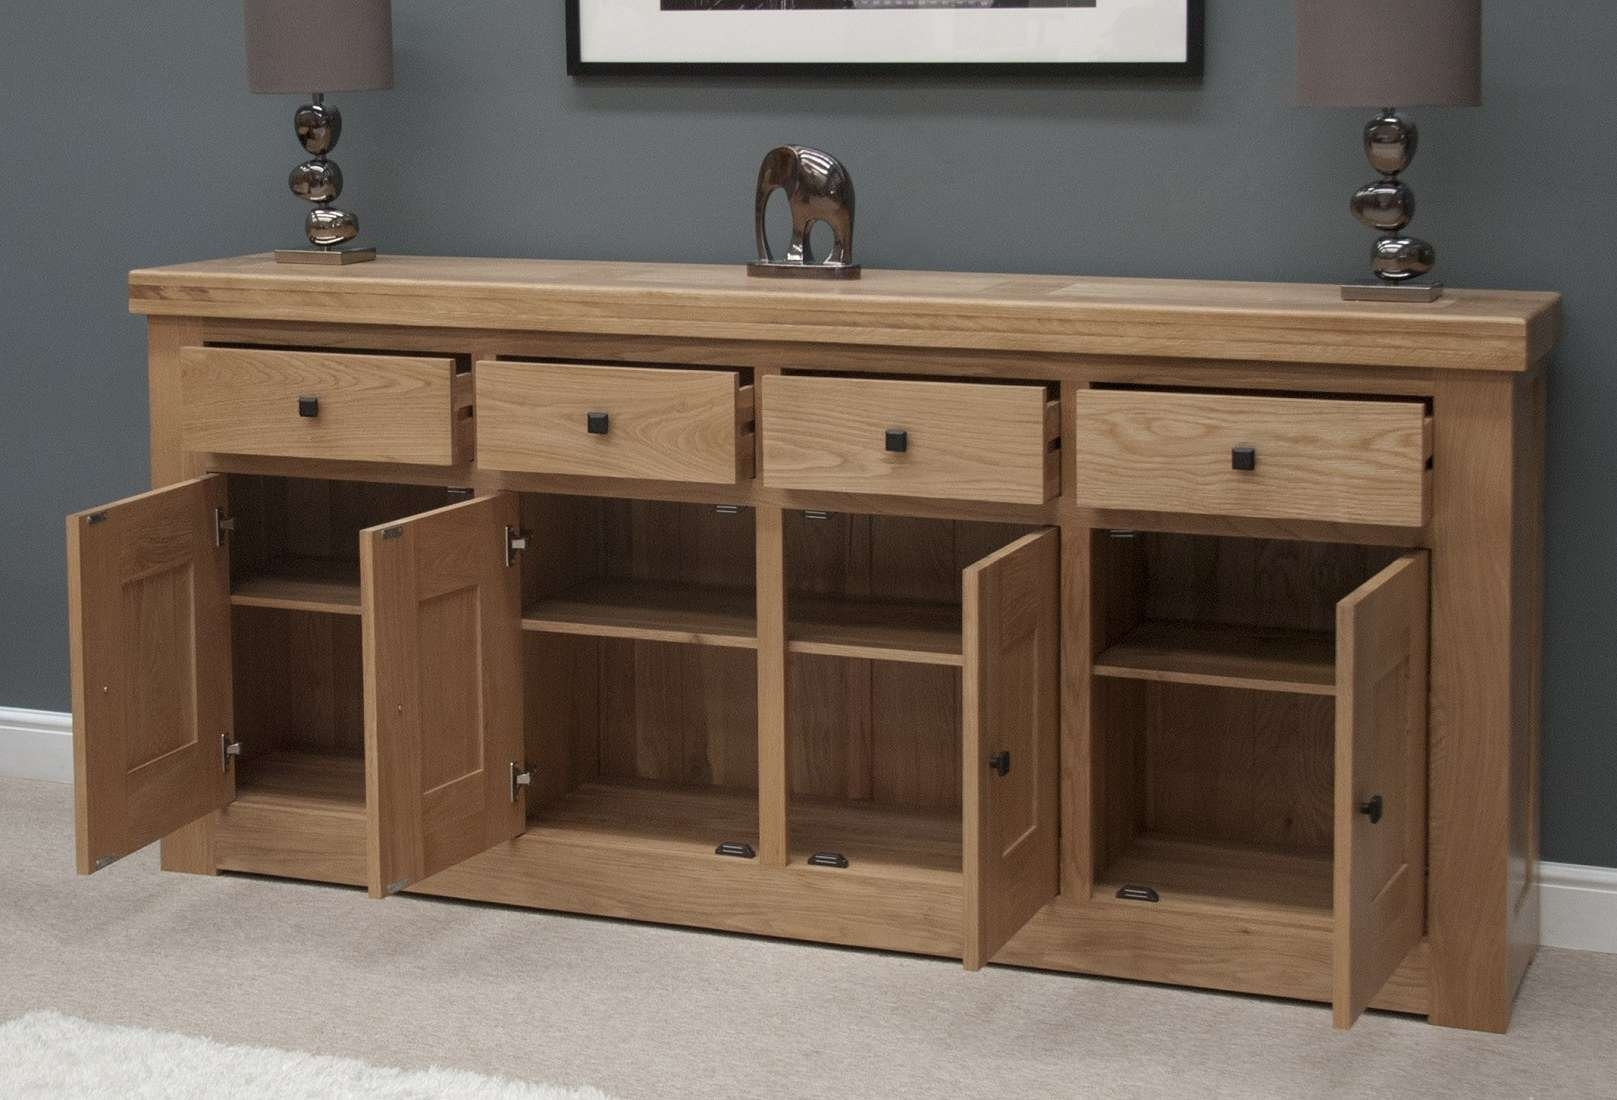 French Bordeaux Oak Extra Large 4 Door Sideboard | Oak Furniture Uk In French Sideboards (View 20 of 20)